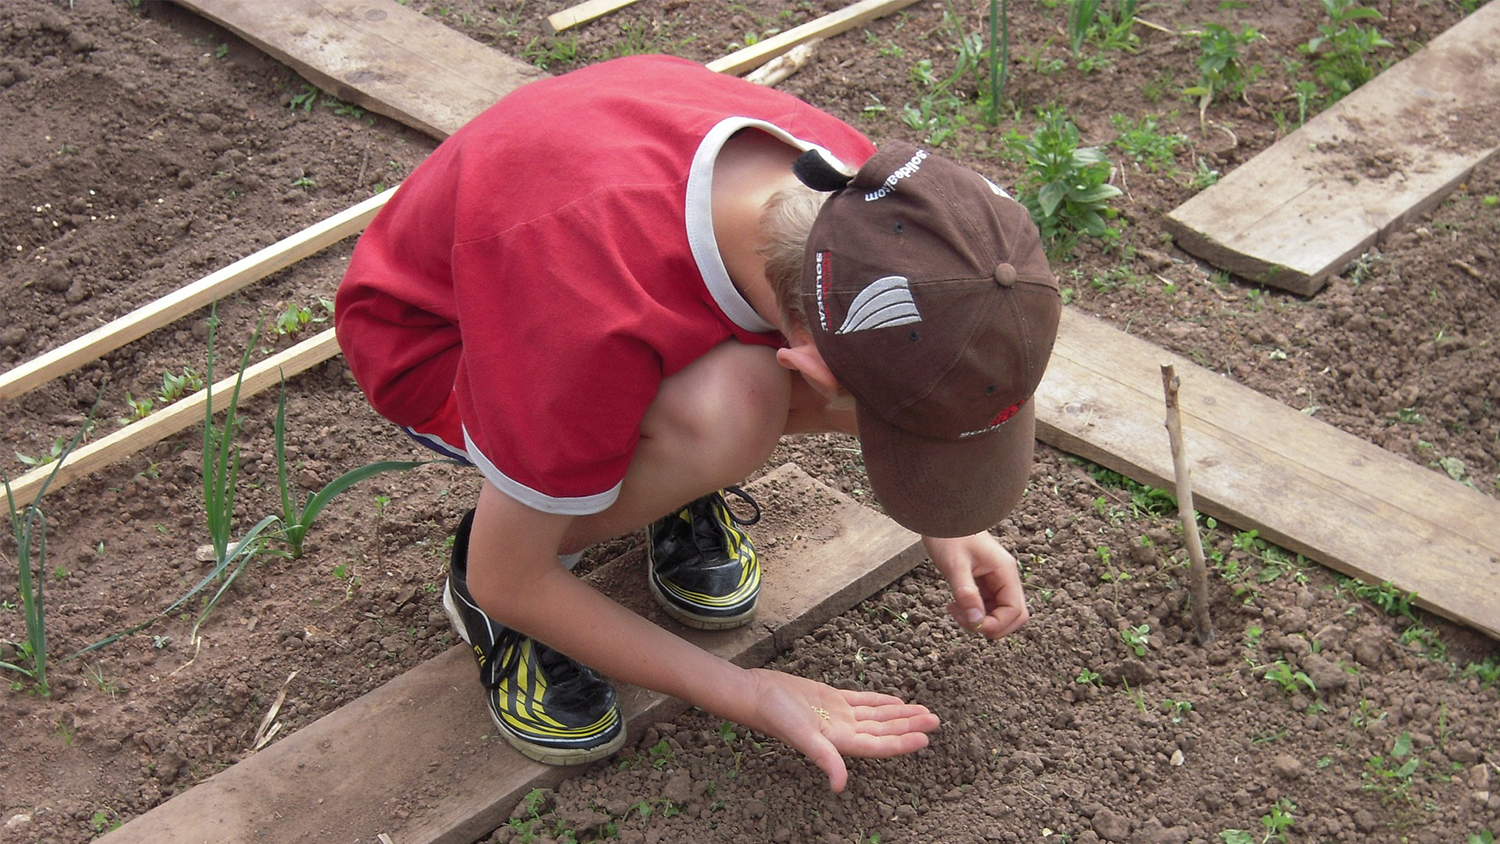 boy in red shirt planting vegetable seeds in the ground